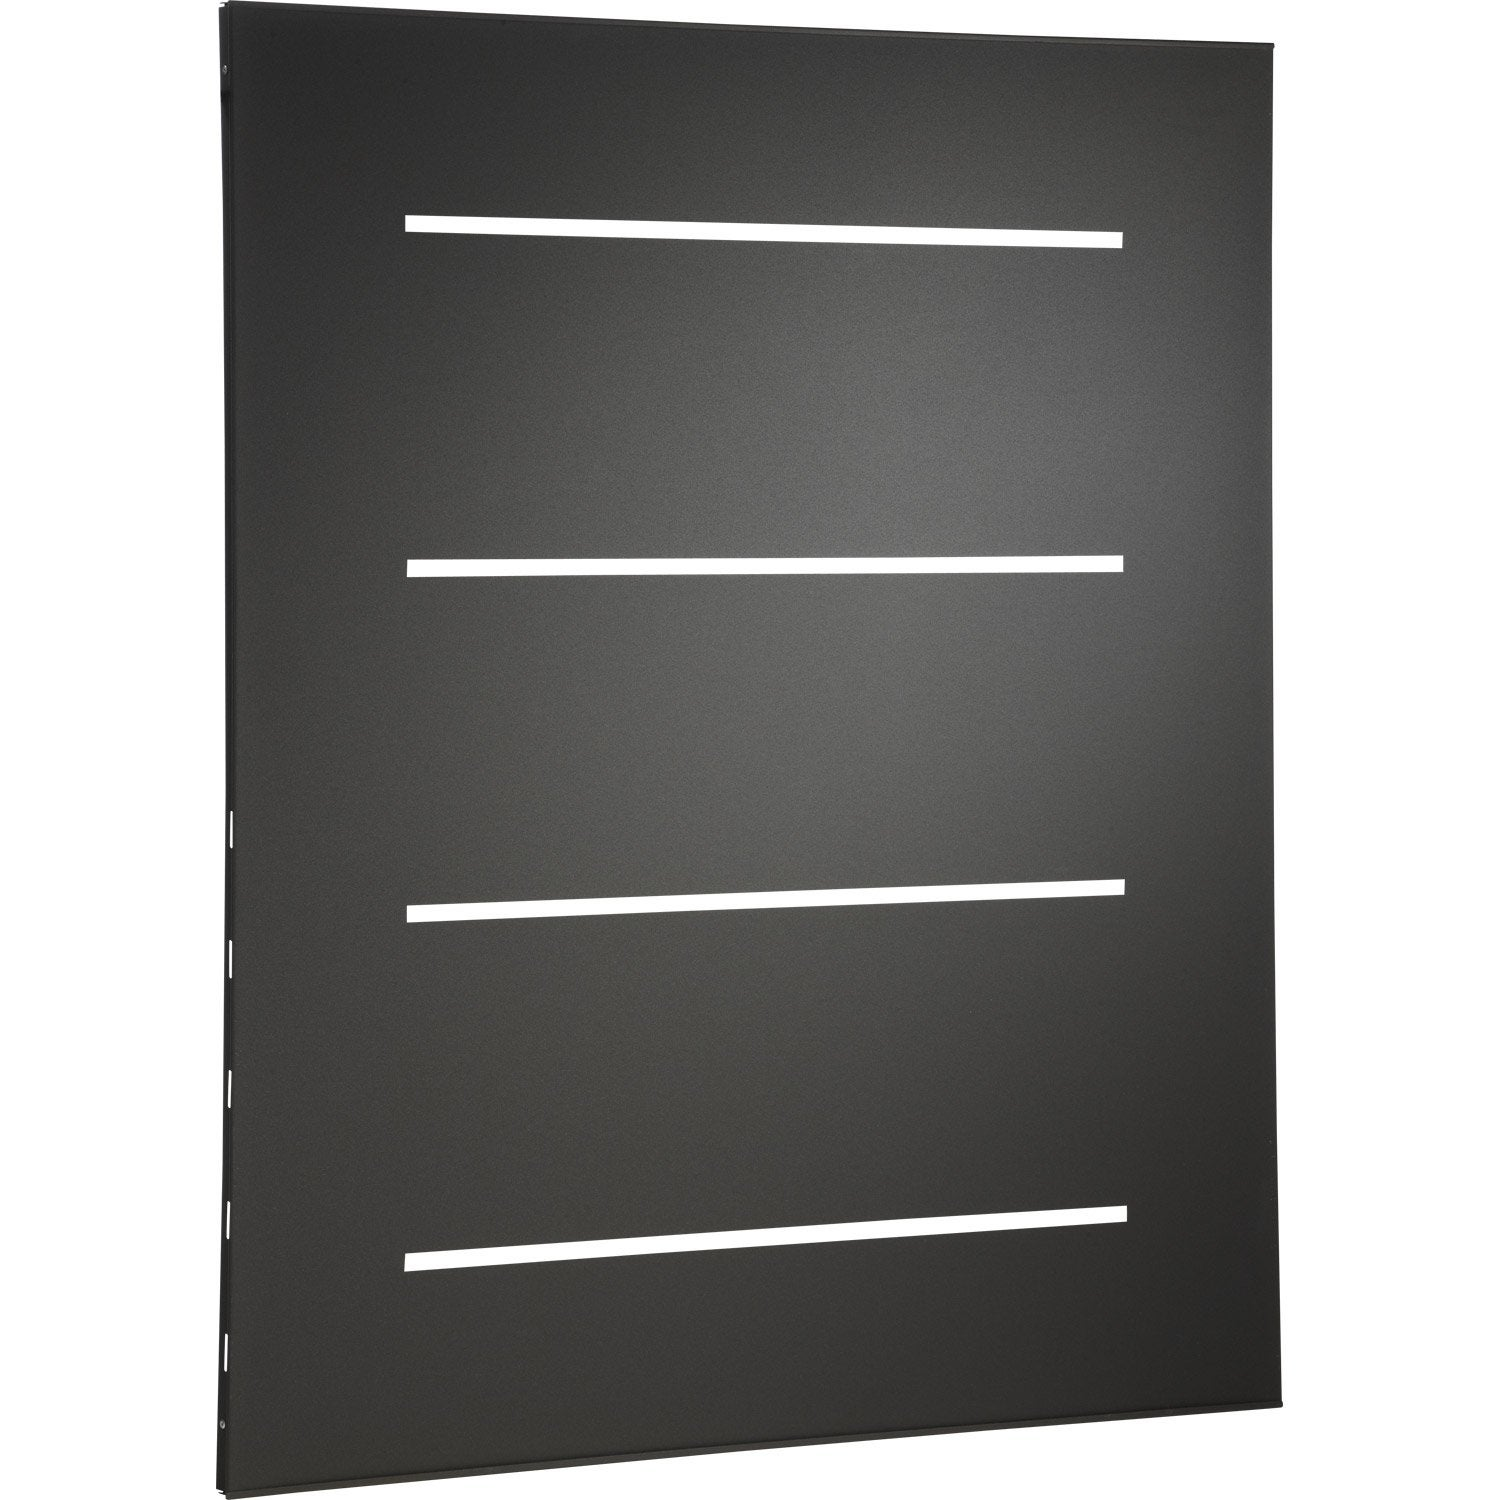 Plaque de protection murale horizon gris cm for Plaque de protection cuisine murale